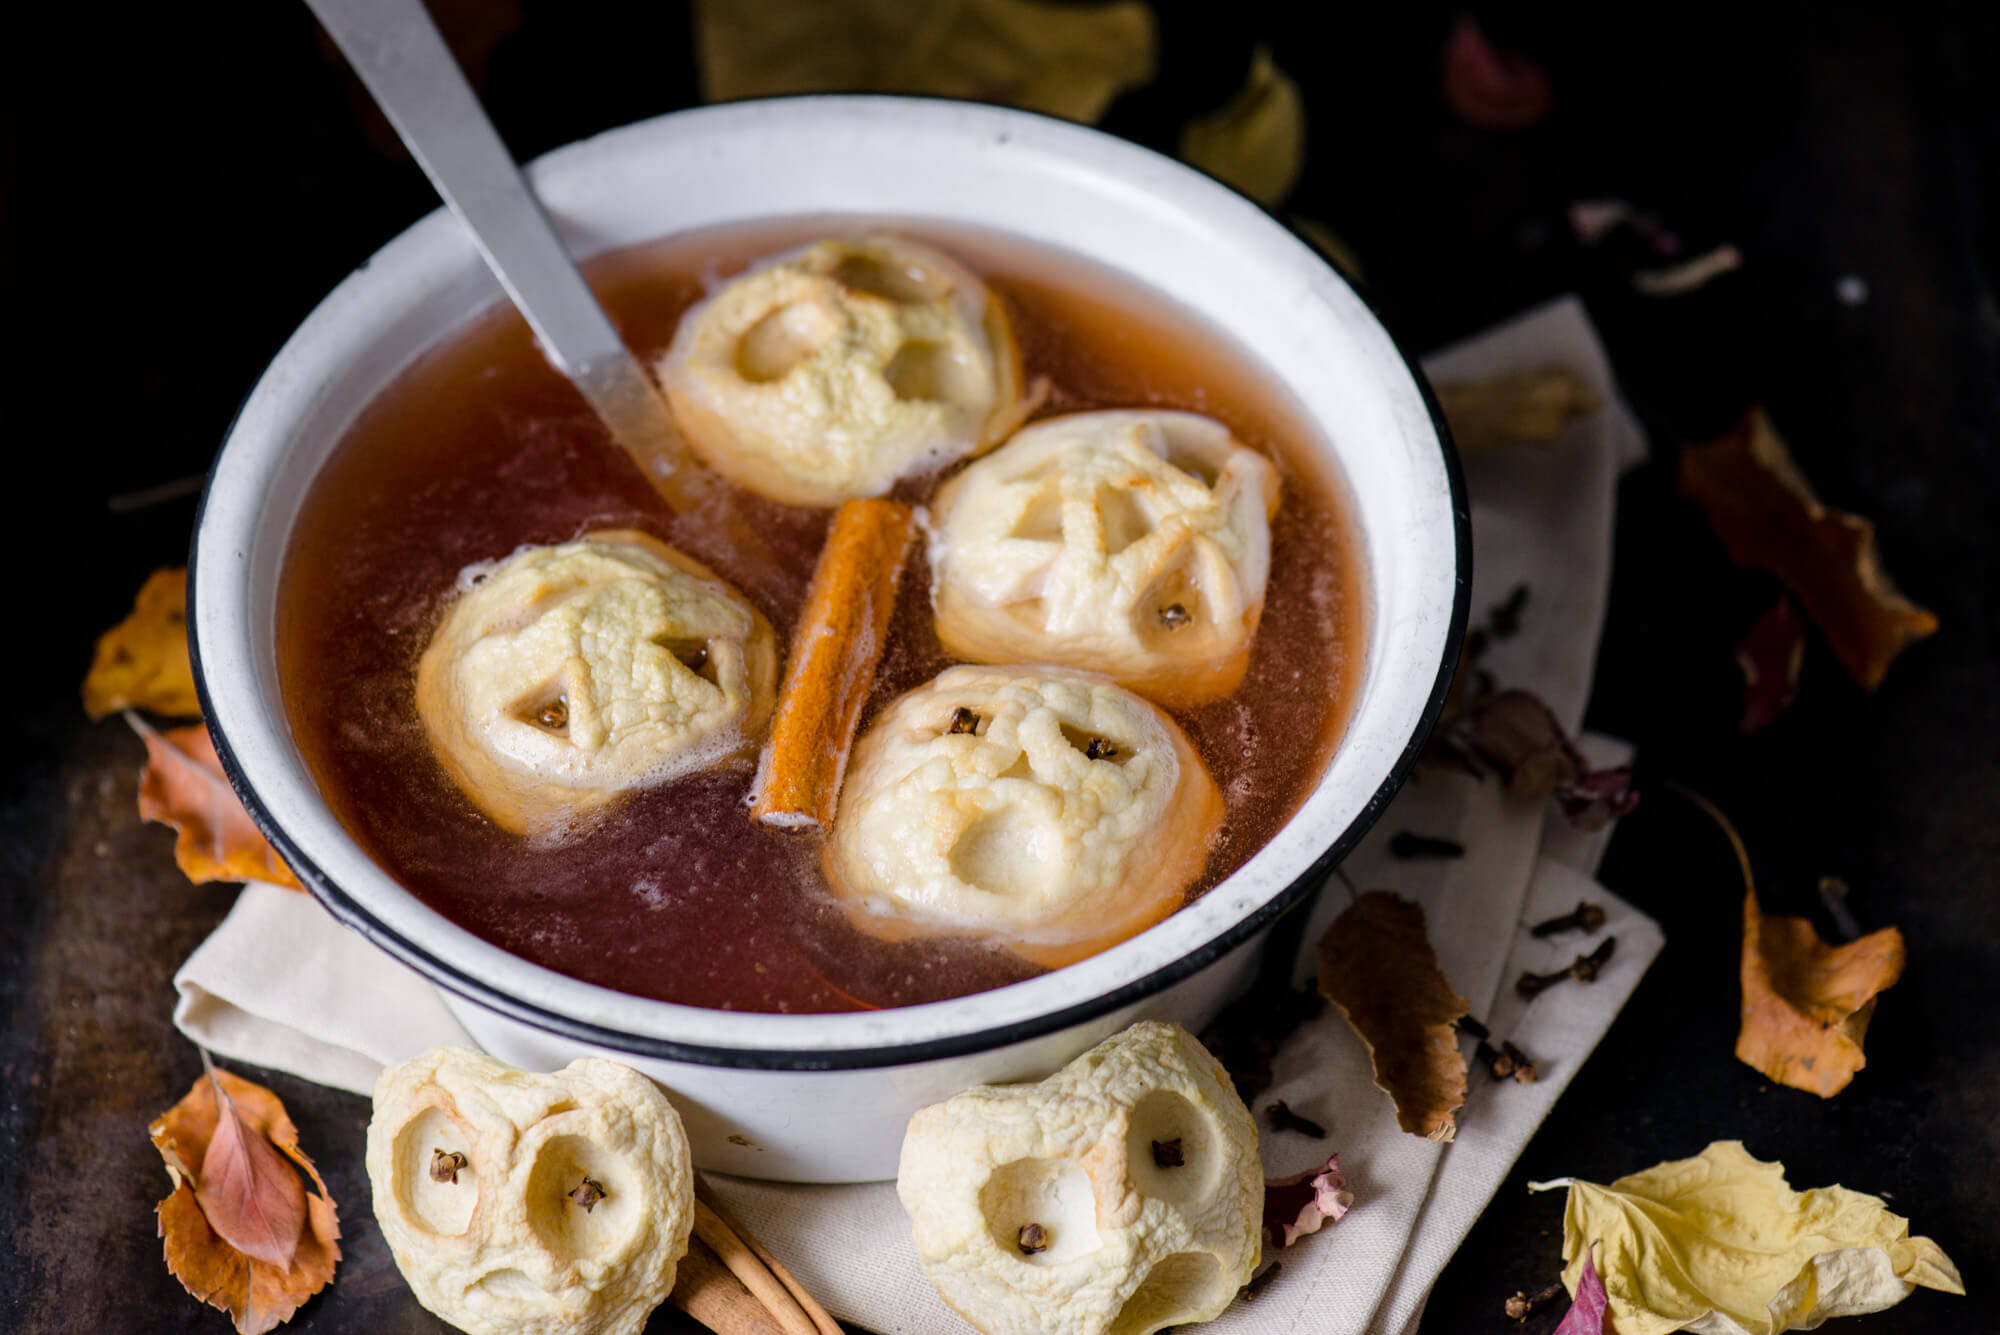 Spooky Apple Cider Punch halloween food ideas